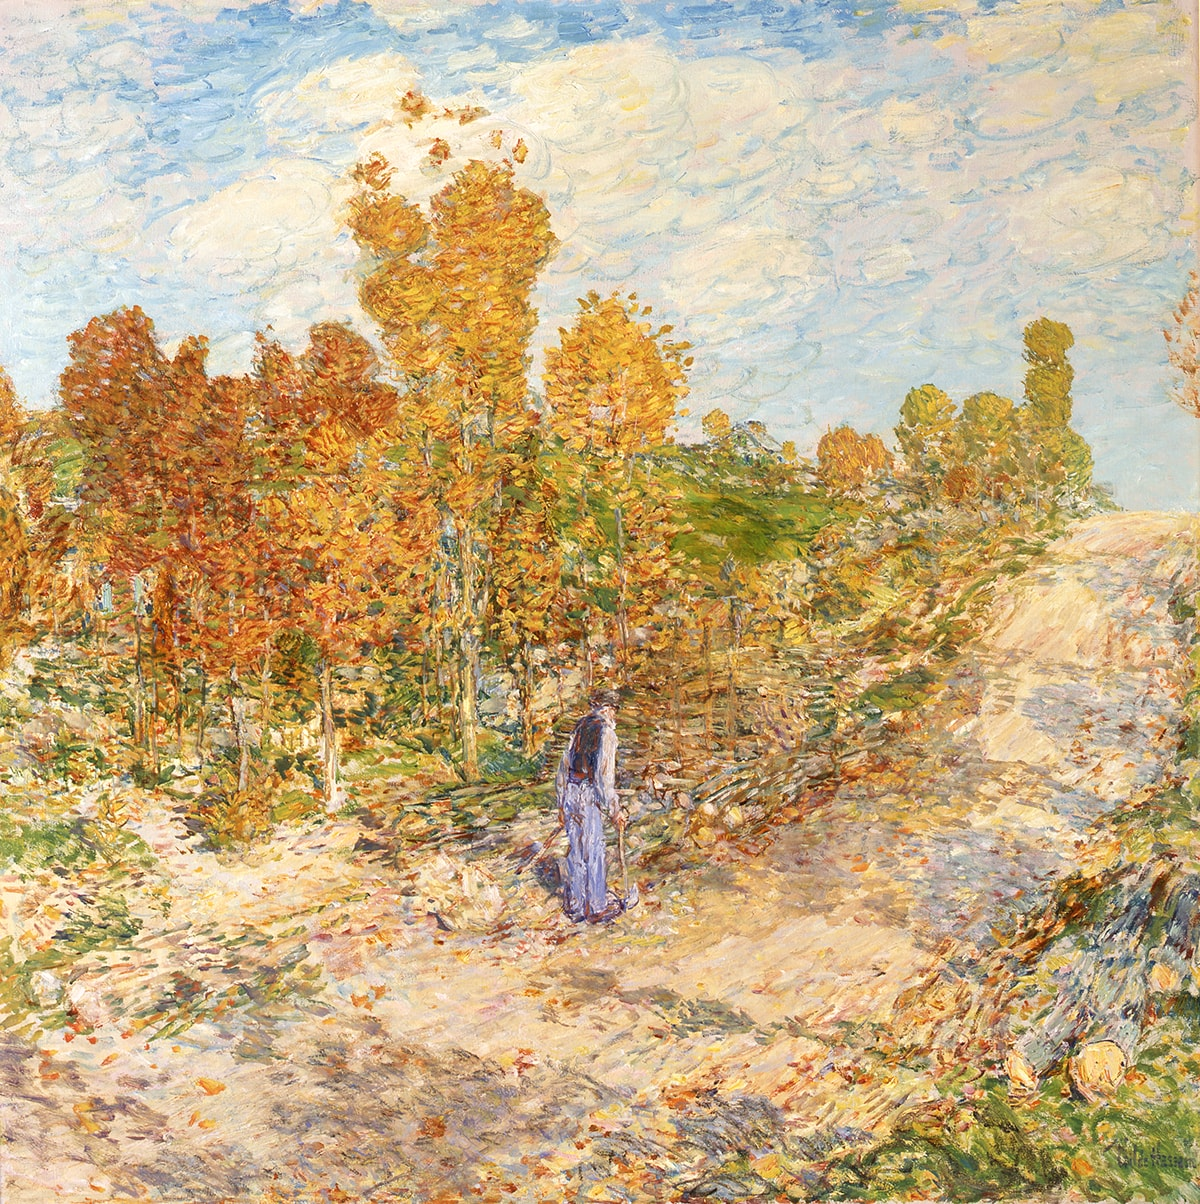 New England Road, Childe Hassam, 34 x 34 inches, oil on canvas. A square painting depicting a man walking along a rural road in autumn. The road is positioned diagonally across the painting starting at the lower left corner where it is broad and wide and continues to center right where it narrows slightly, ending at the horizon line a third of the way from the top. Shadows from nearby trees fall across the road's pale, tan surface. The top third of the painting is a blue sky with drifting, billowy clouds in pale, watery blues and whites. The center area of the work features a stand of trees with leaves of rusty red and yellow amid green grass, shrubbery, and fallen leaves. At center, a man stands with his back turned wearing a light-colored shirt, a dark vest, light blue trousers and a hat. He carries an ax as though he has been chopping wood at the roadside. Paint is applied with small brush strokes and colors are layered creating a soft effect without hard edges.